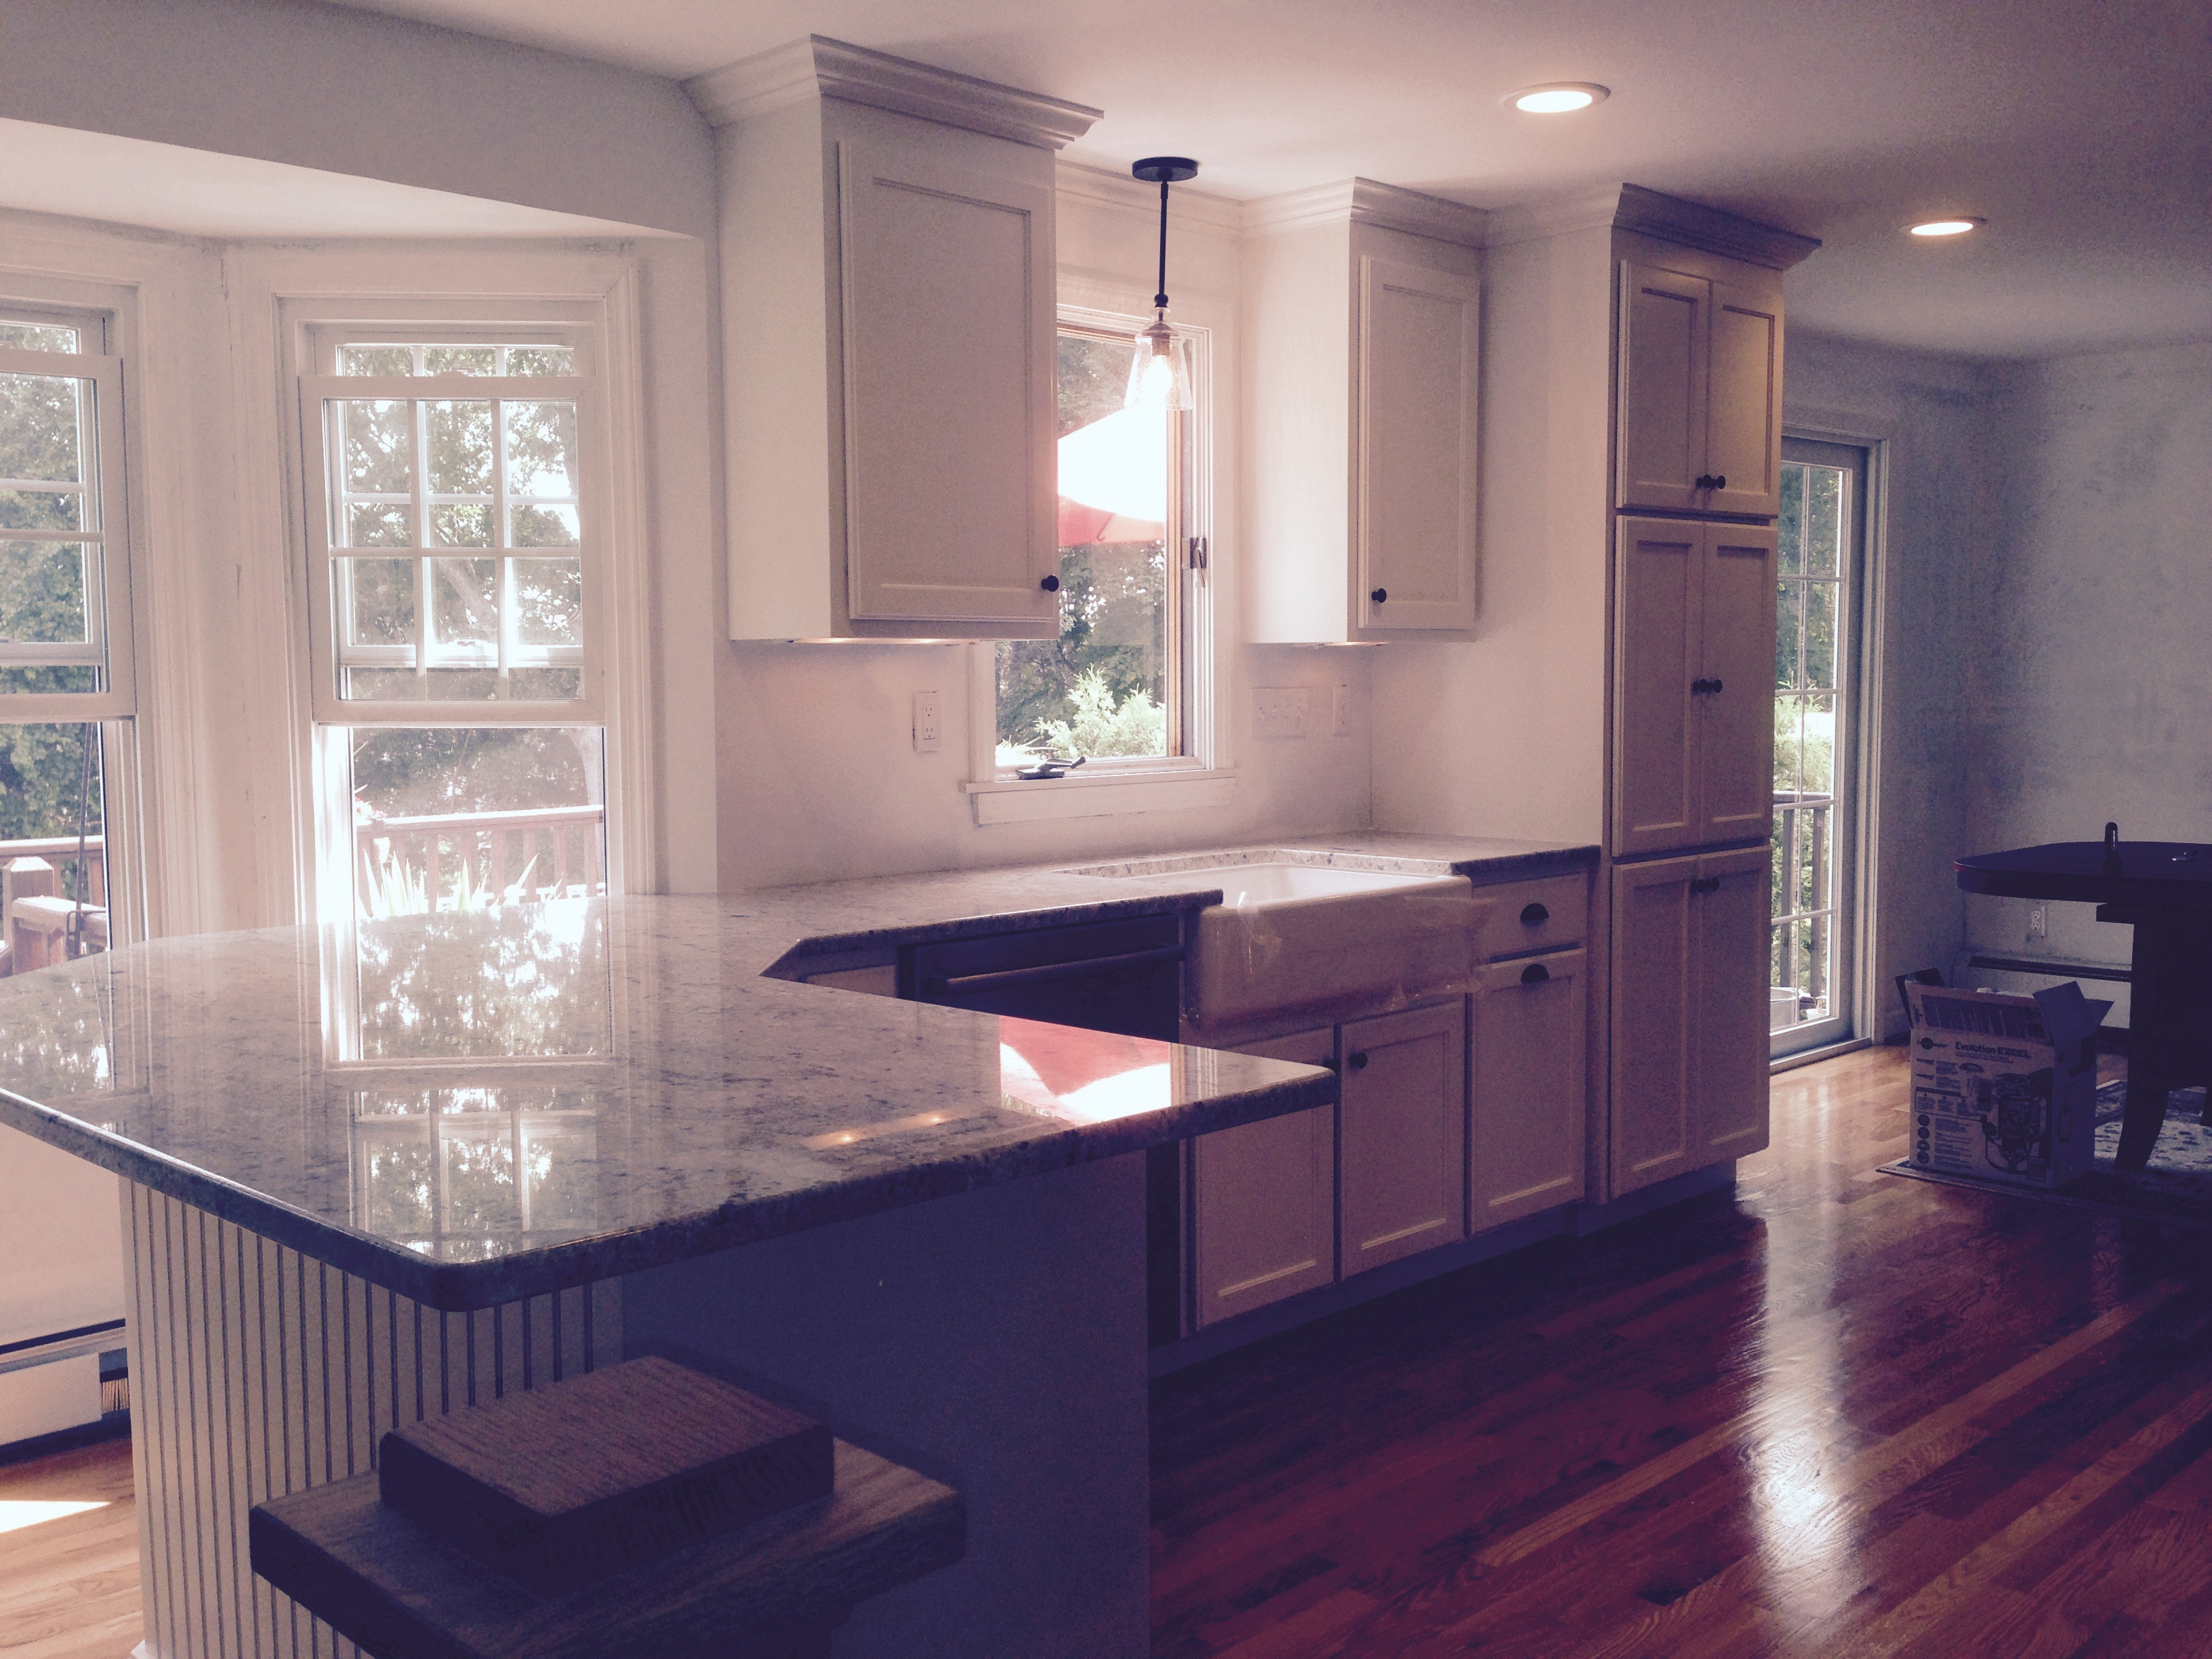 High quality kitchen counter-tops in New Britain, CT